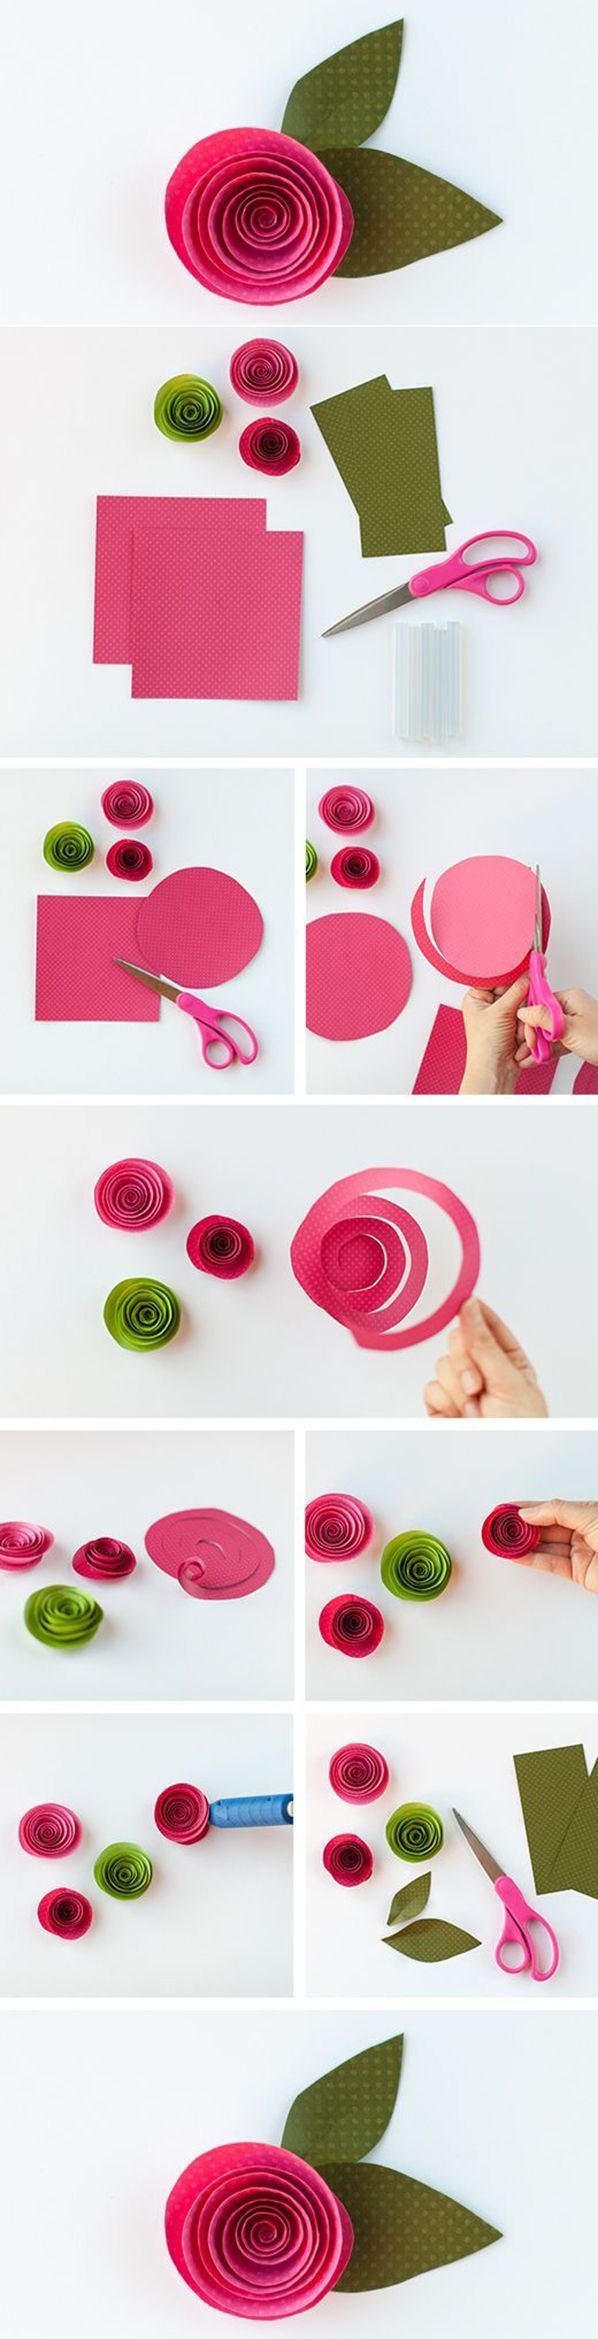 Pin by sandy palmeter on how to pinterest flower diy craft and maybe make a string of them to hang on walls perfect for extra scrapbook paper you have or crafts for the kids mightylinksfo